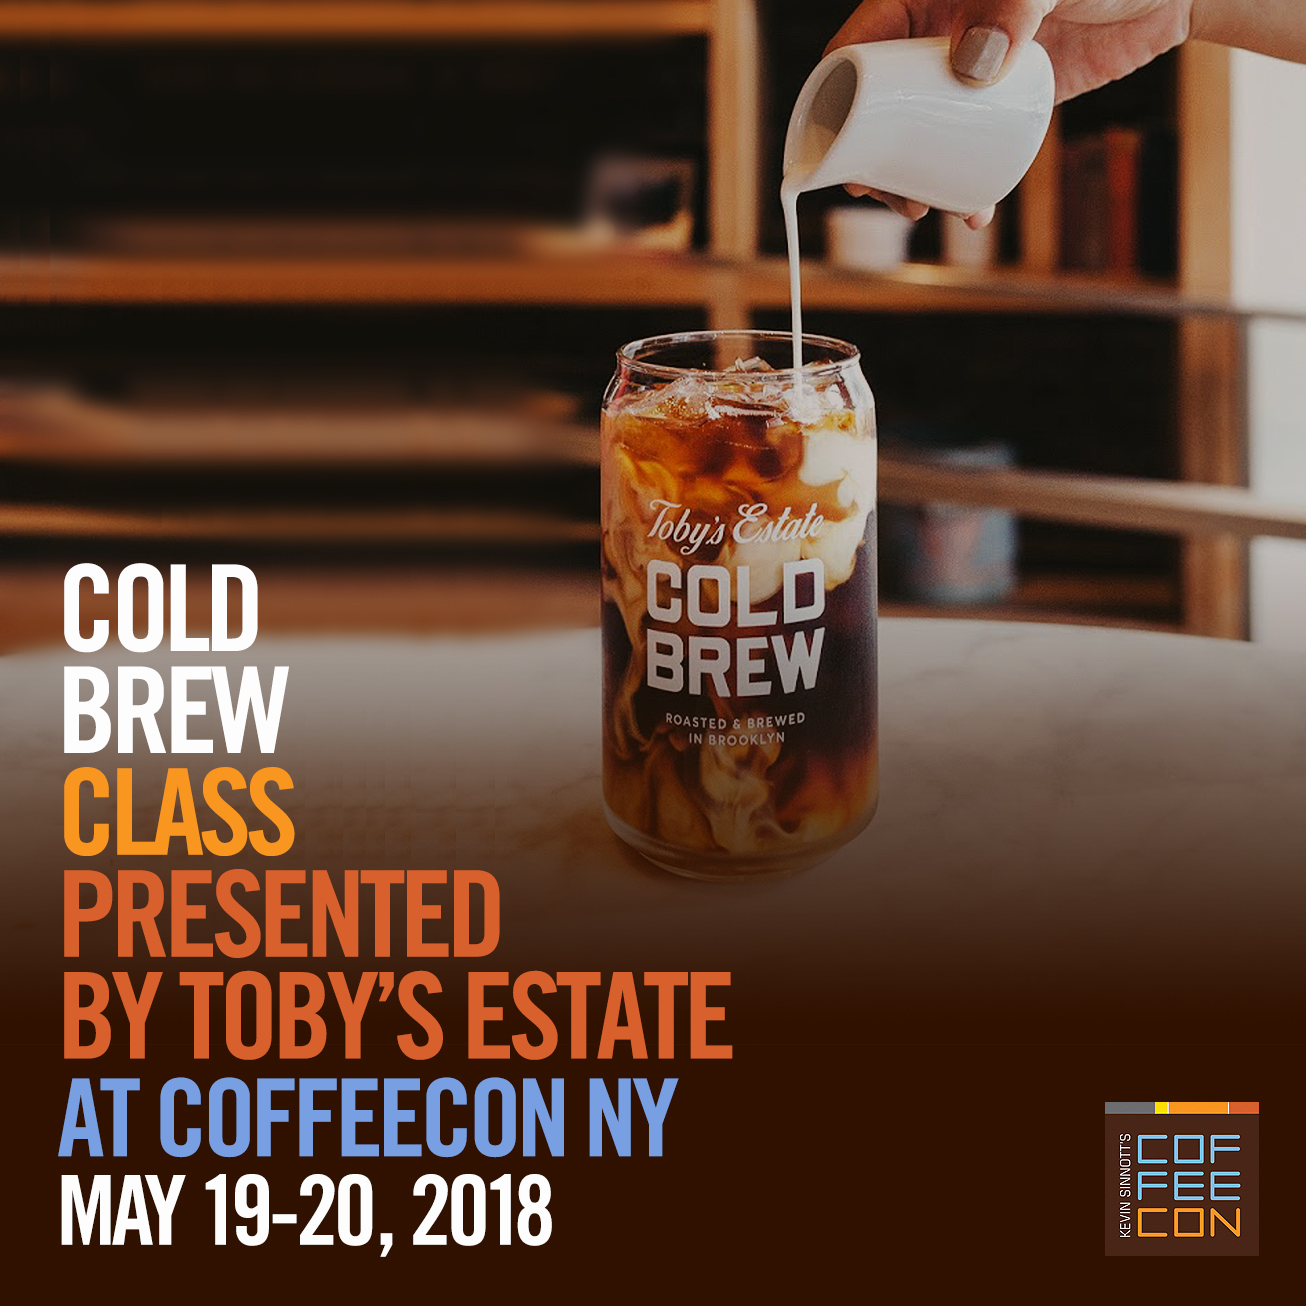 Cold Brew Class with Toby's Estate at CoffeeConNY